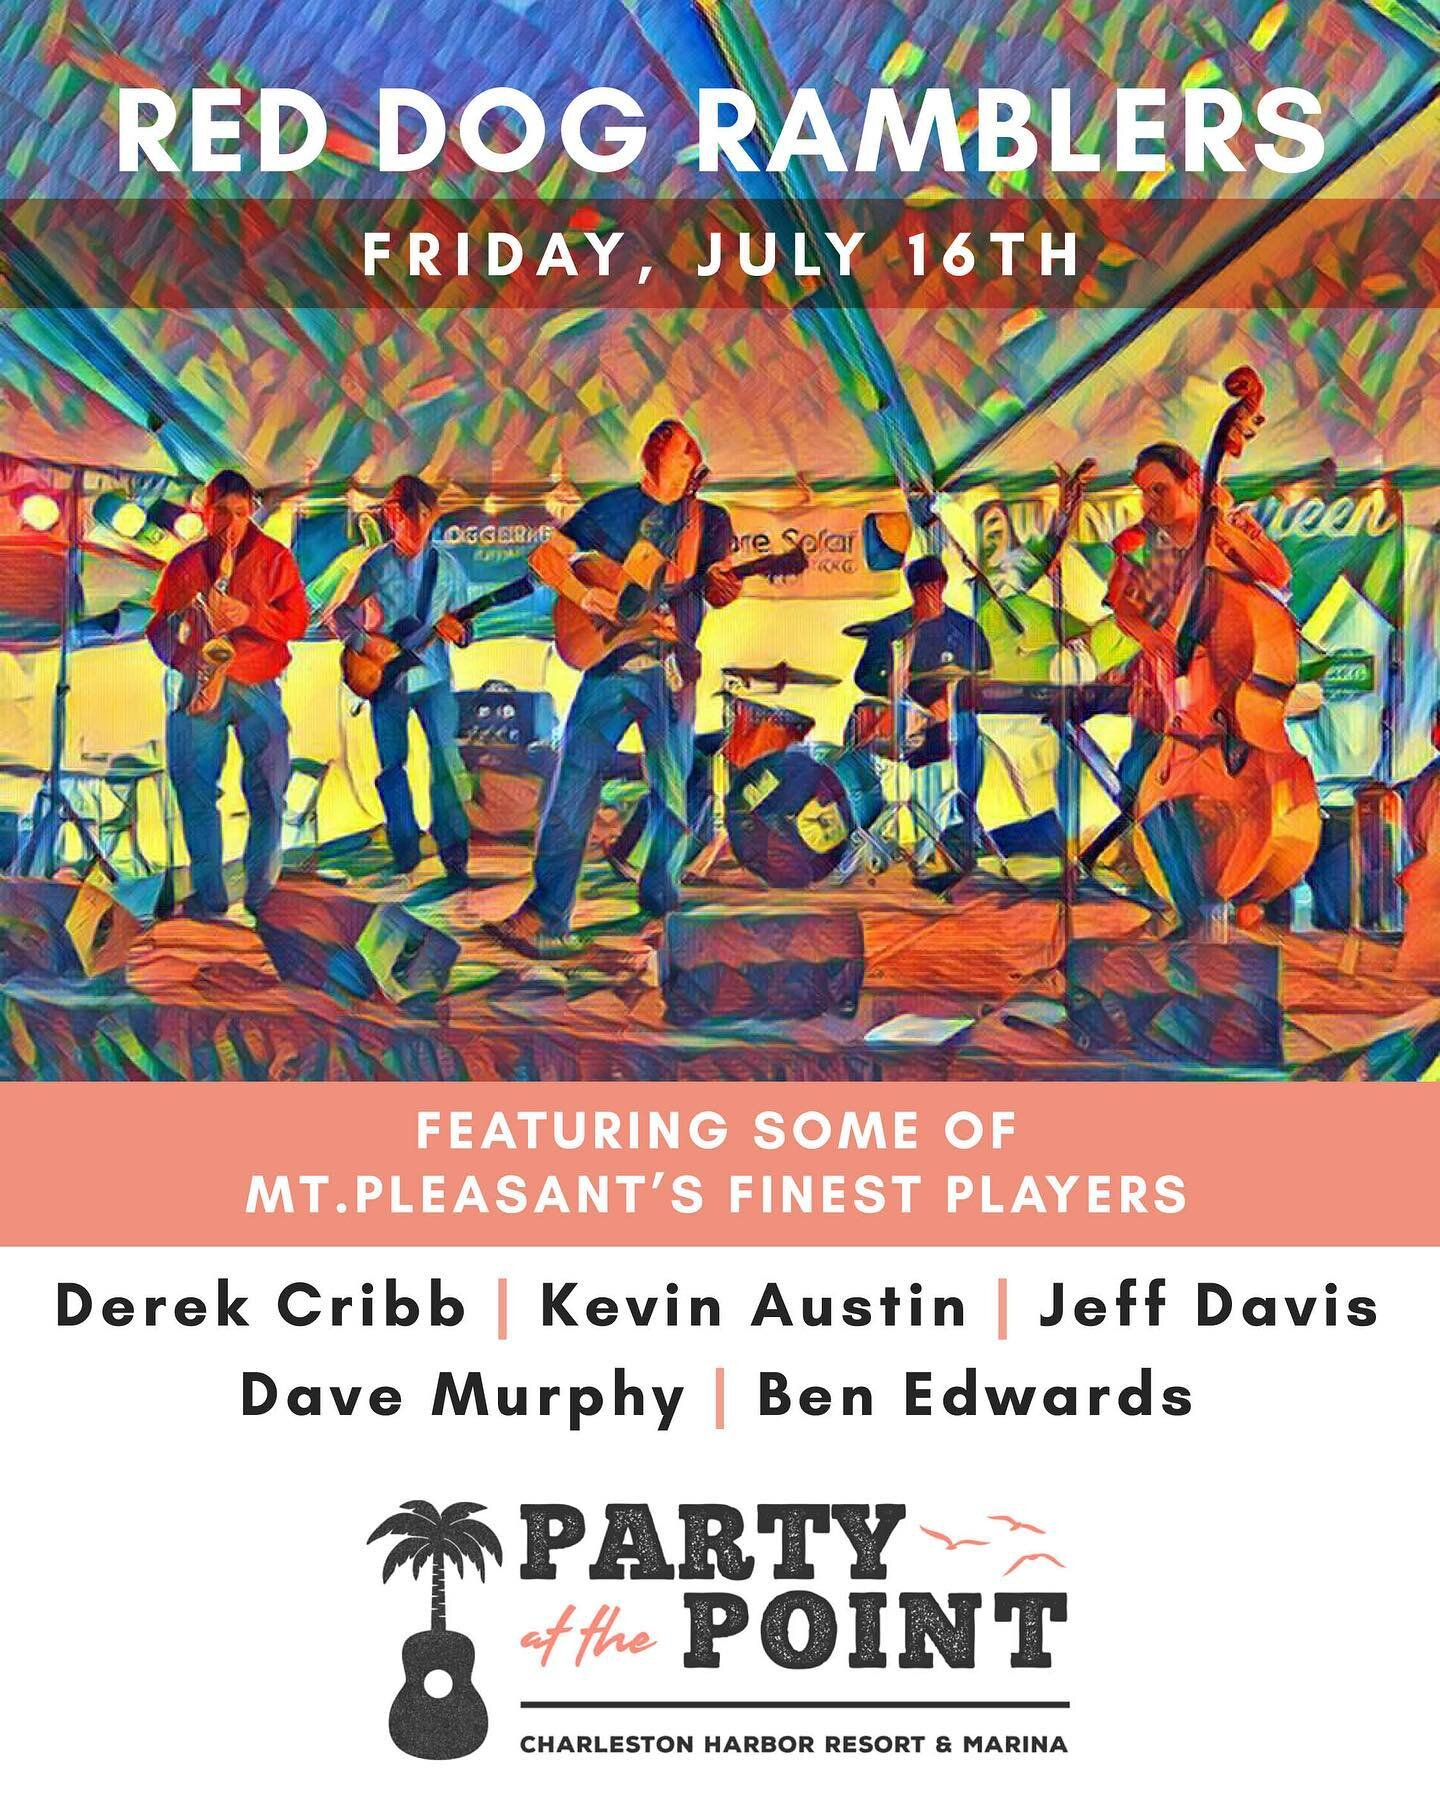 Tomorrow's Party at the Point show sold out fast, so get your tickets to NEXT FRIDAY's show with the Red Dog Ramblers while supplies last! Link in our bio for tix!!  Special thanks to @cheerssc @ketelonebotanical @ketelone @corona @modelousa @thebridgeat1055 @my98rock @redsicehouse @starlingchevroletmp @earformusic @charlestonharborresort @charlestonharbormarina @chasharborfishhouse